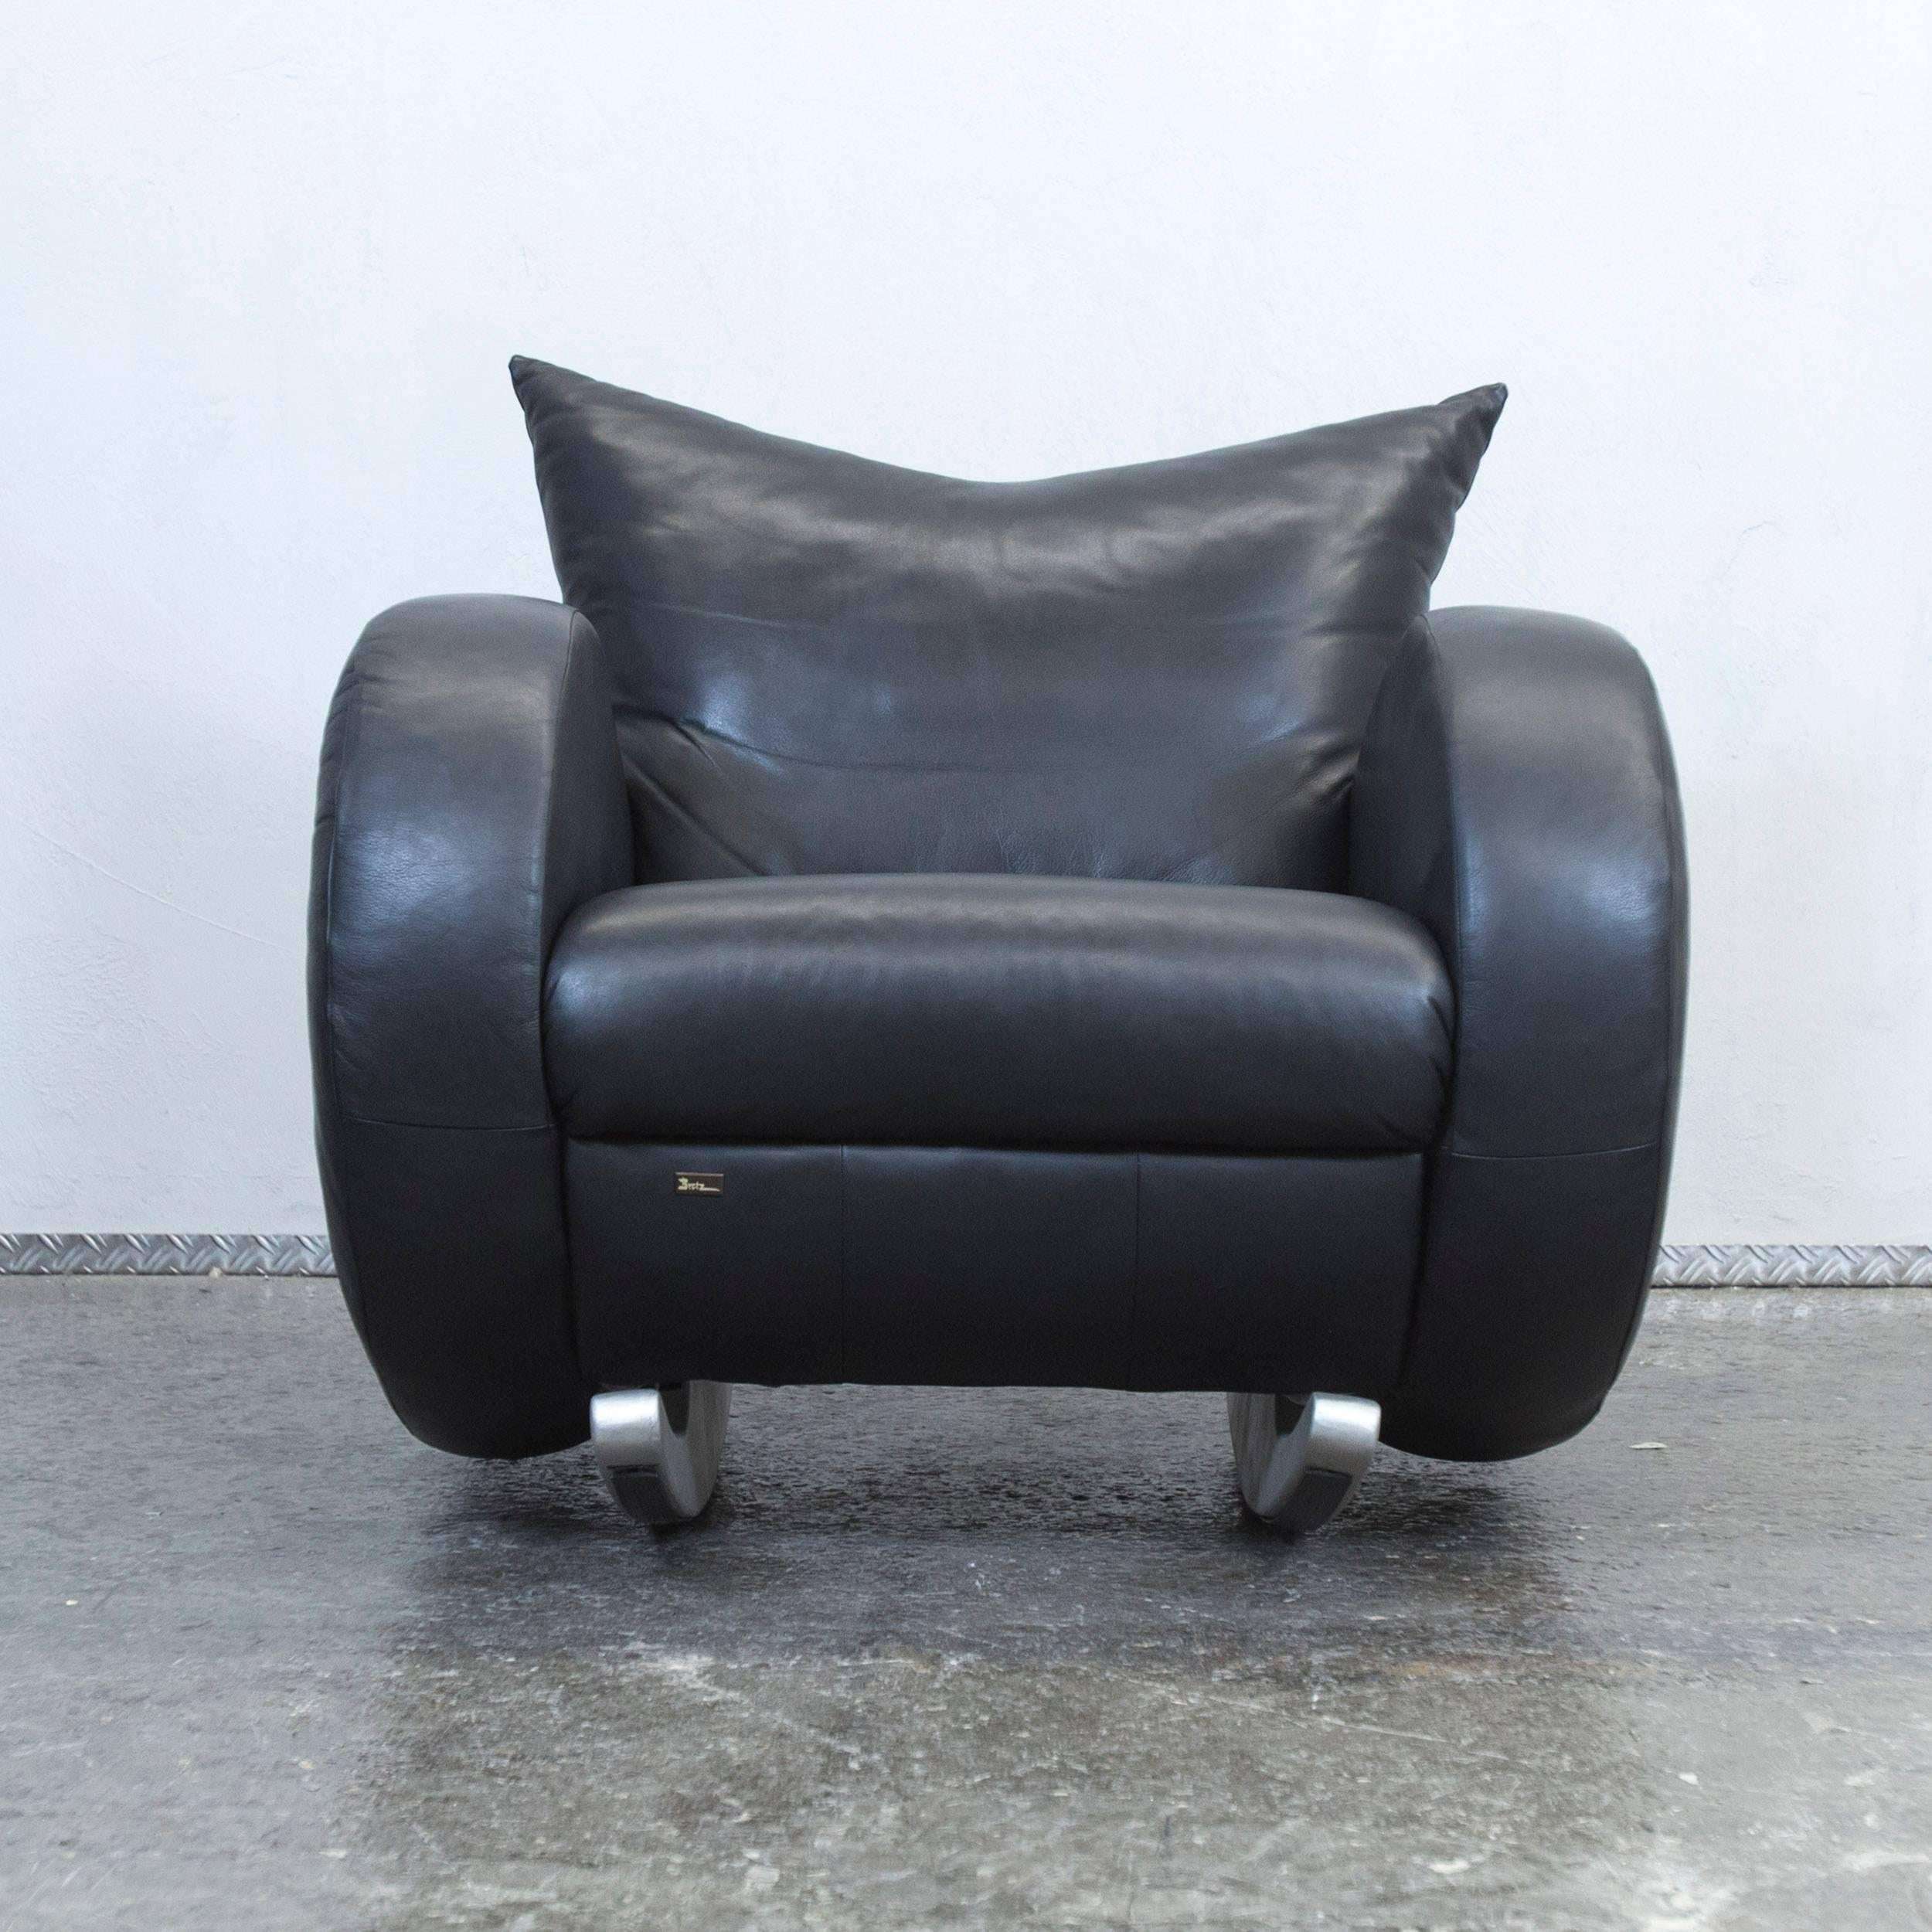 Mexico Chair Schaukelstuhl Bretz Designer Armchair Black Leather One Seat Couch Rocking Chair Modern